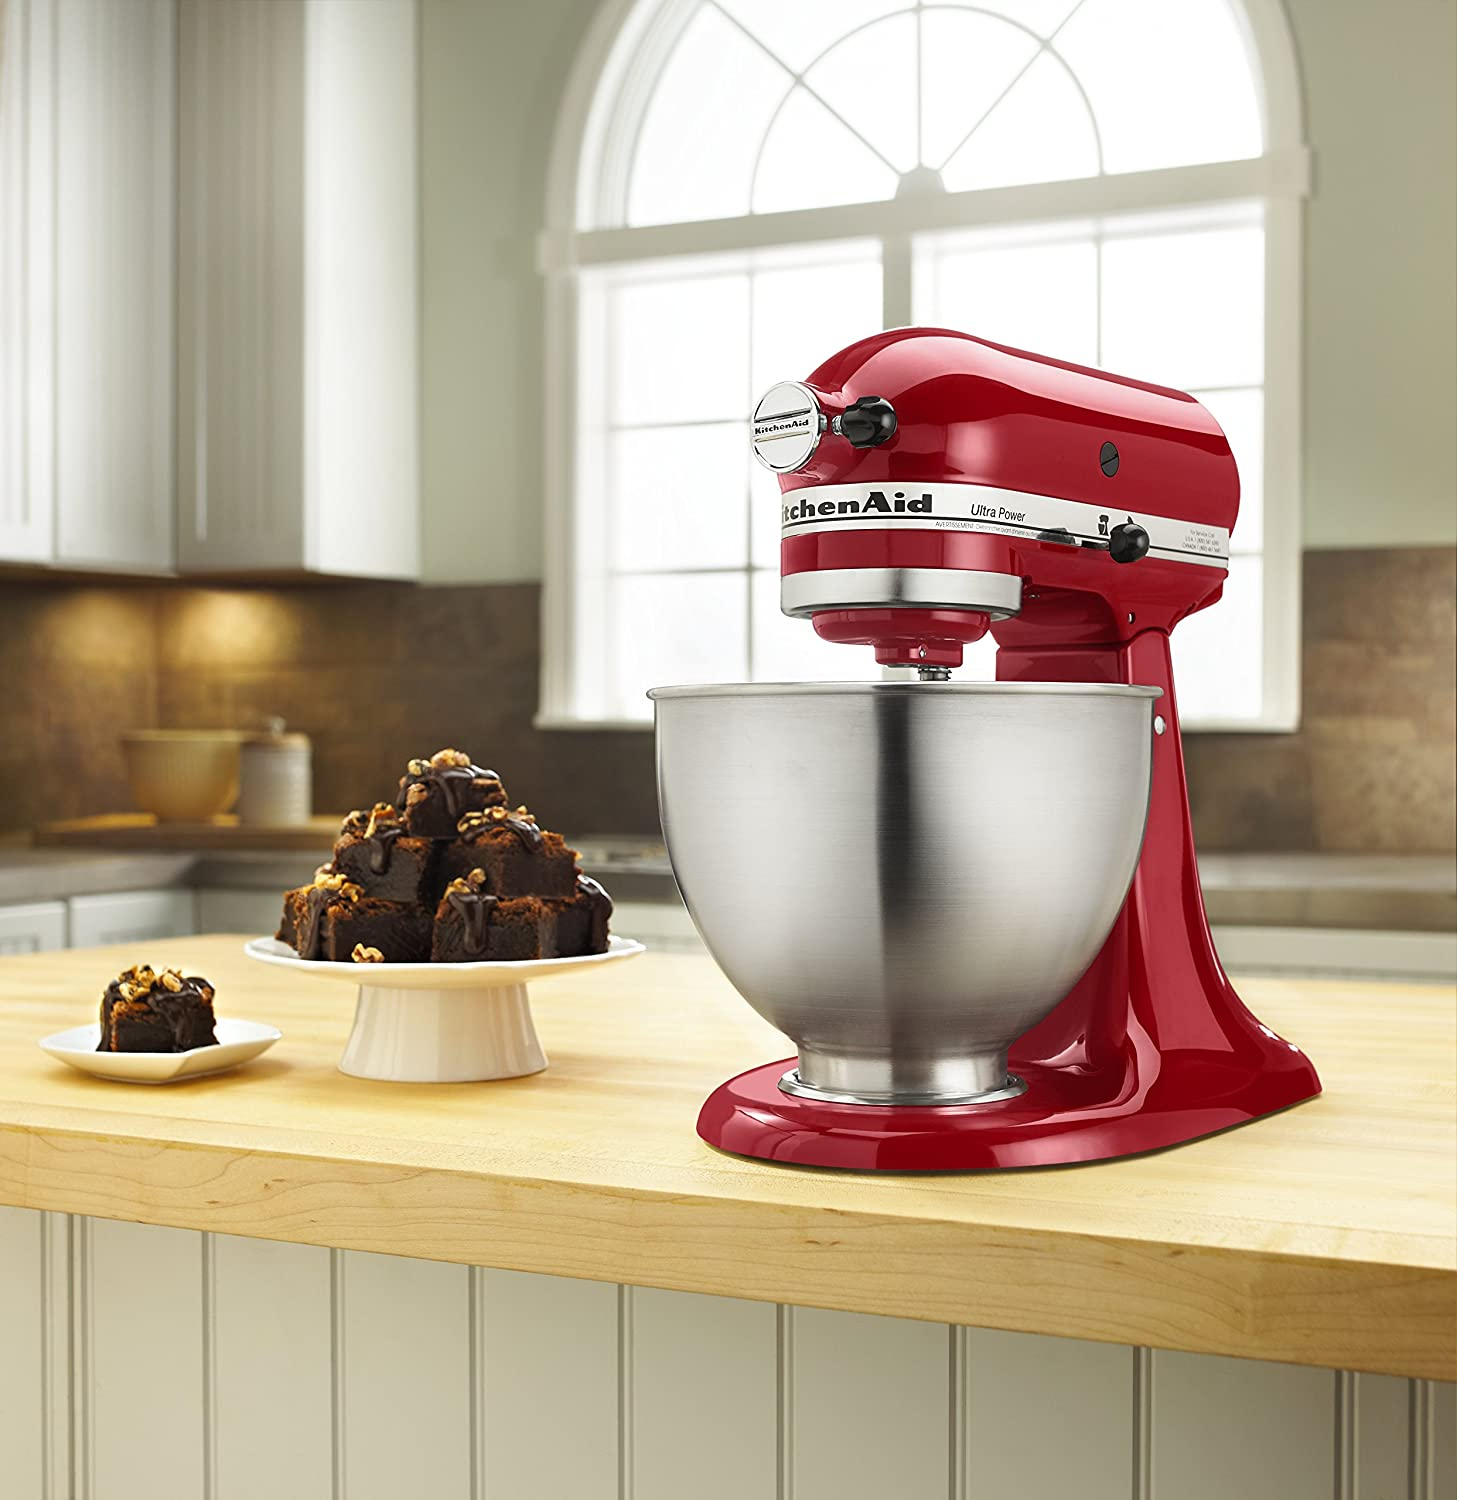 Amazon.com: KitchenAid 4-1/2-Quart Ultra Power Stand Mixer, Empire ...